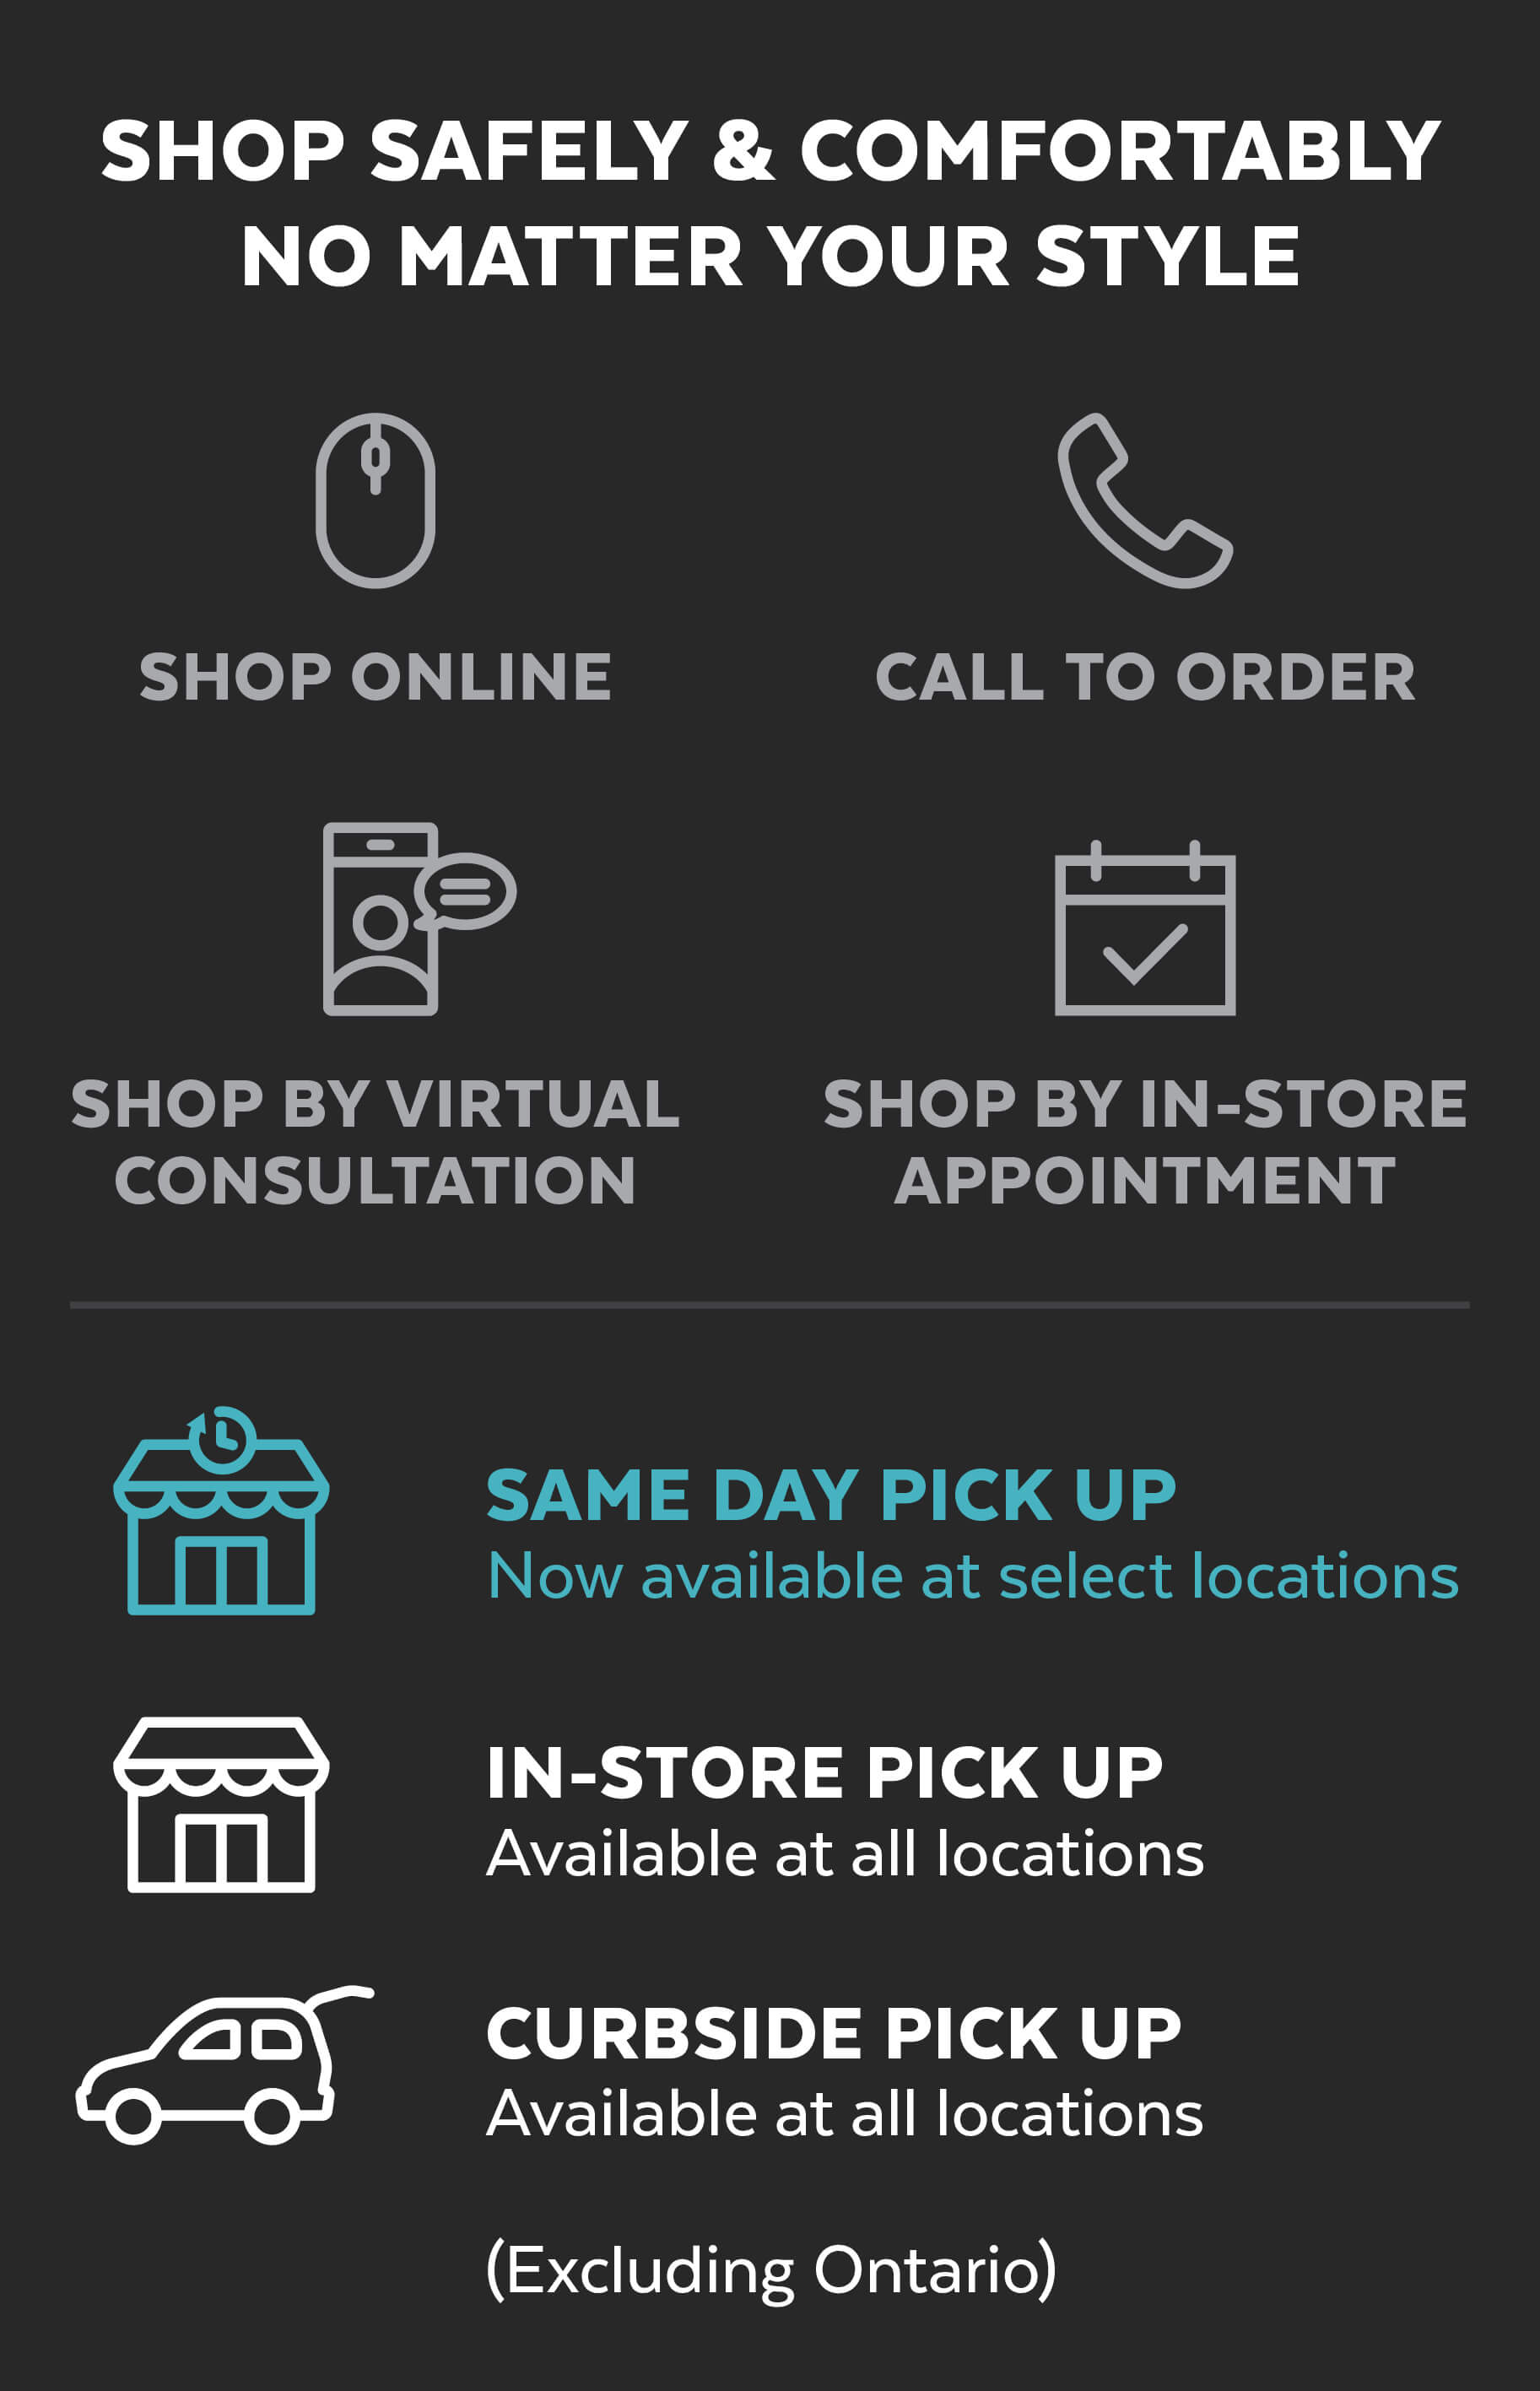 Shop online, by virtual consultation, or in-store appointment or call to order and try same day pick up, in-store or curbside